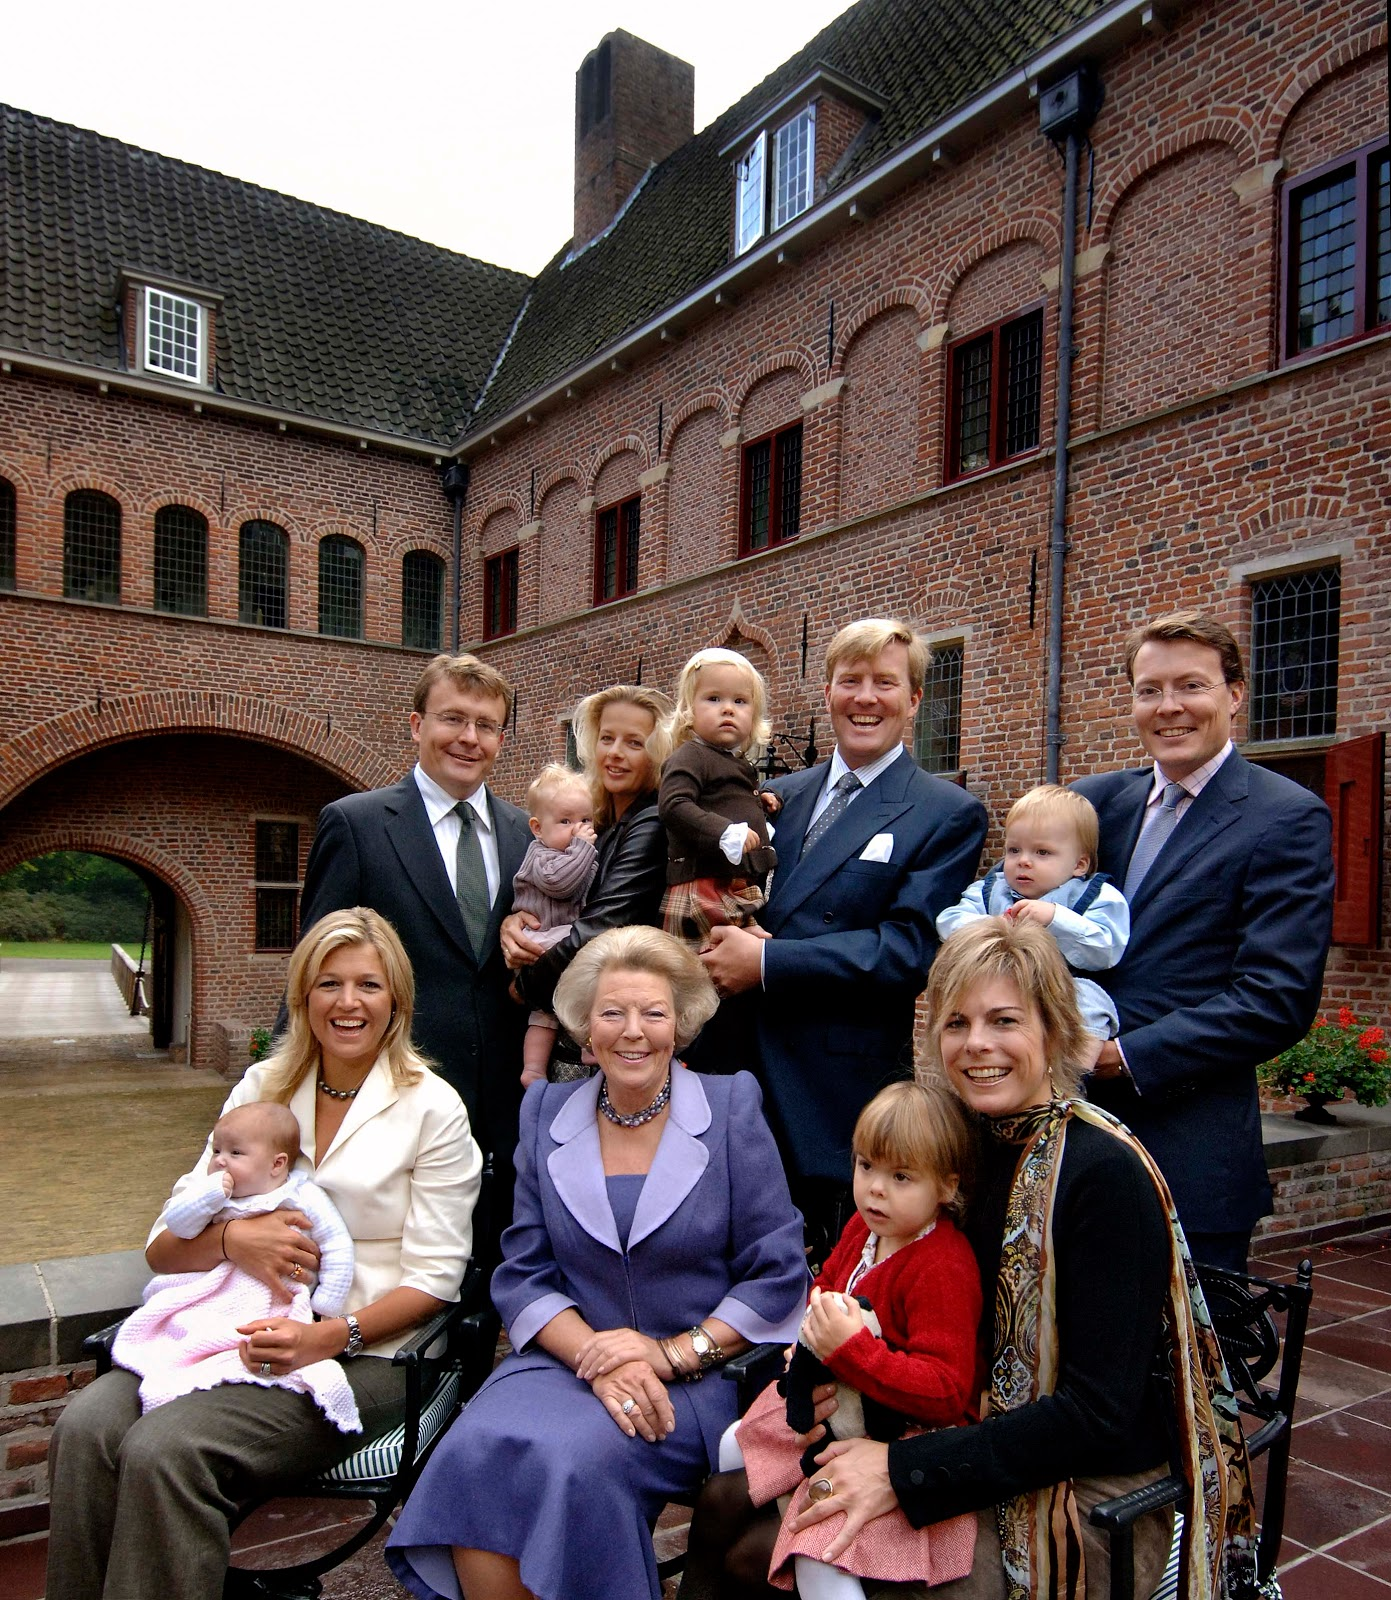 marie poutine 39 s jewels royals king willem alexander and queen maxima. Black Bedroom Furniture Sets. Home Design Ideas